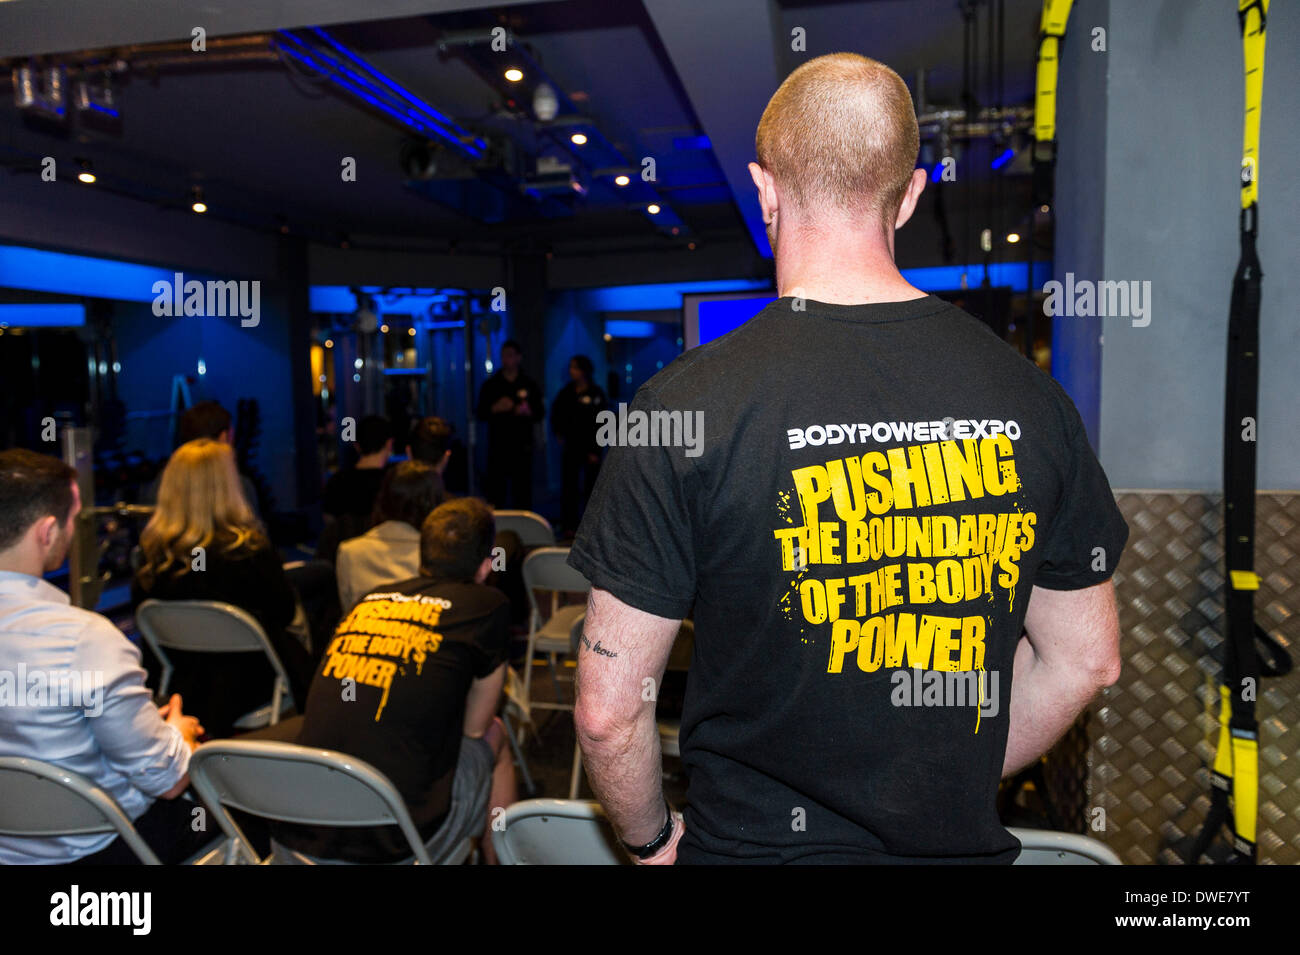 London, UK. Thursday 6th March. 2014:  BodyPower staff listening to a presentation at the launch of BodyPower Expo 2014   Photographer; Gordon Scammell/Alamy Live News. - Stock Image